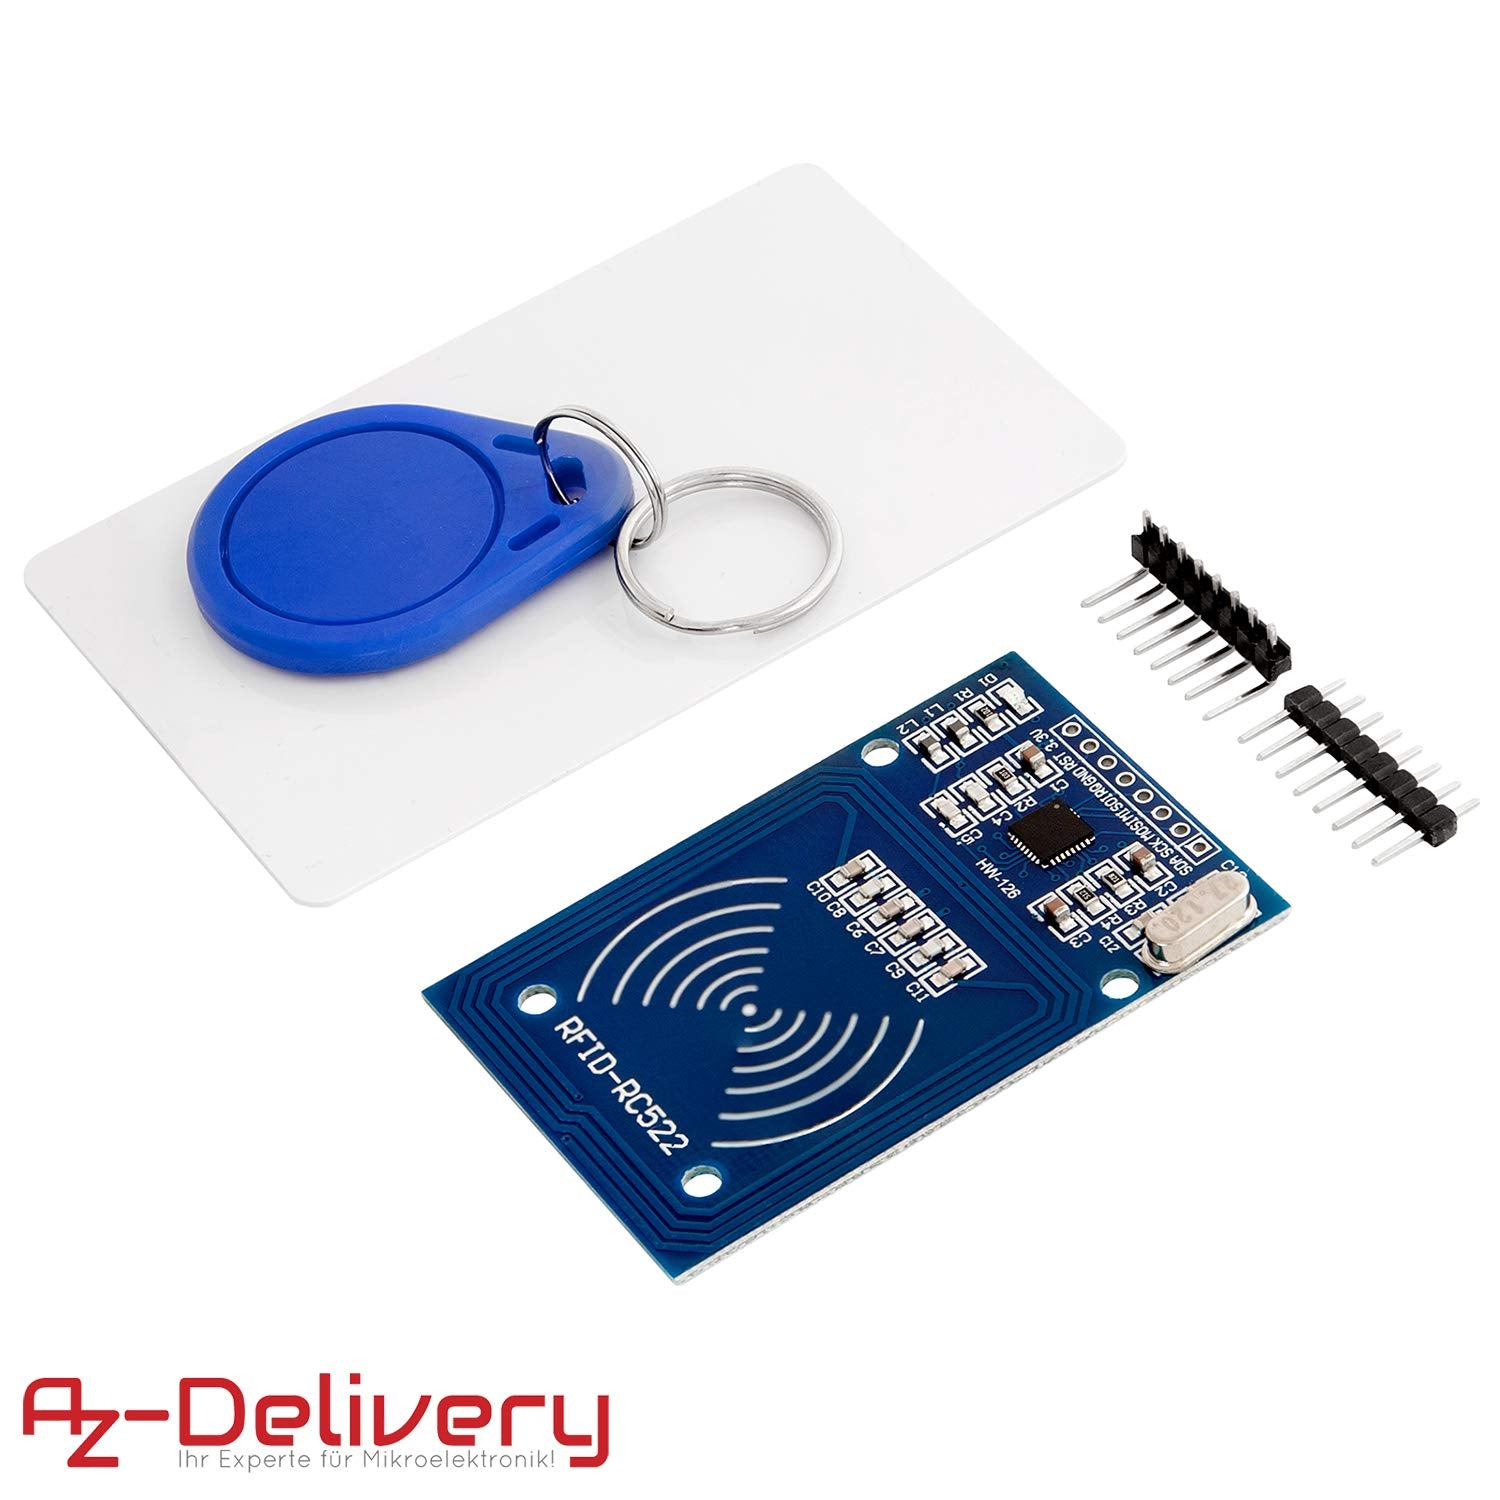 RFID Kit - MFRC522 RC522 RF IC Card Reader Sensor Module, RFID Chip Key Ring and S50 Card 13.56MHz, Compatible with Arduino Raspberry PI